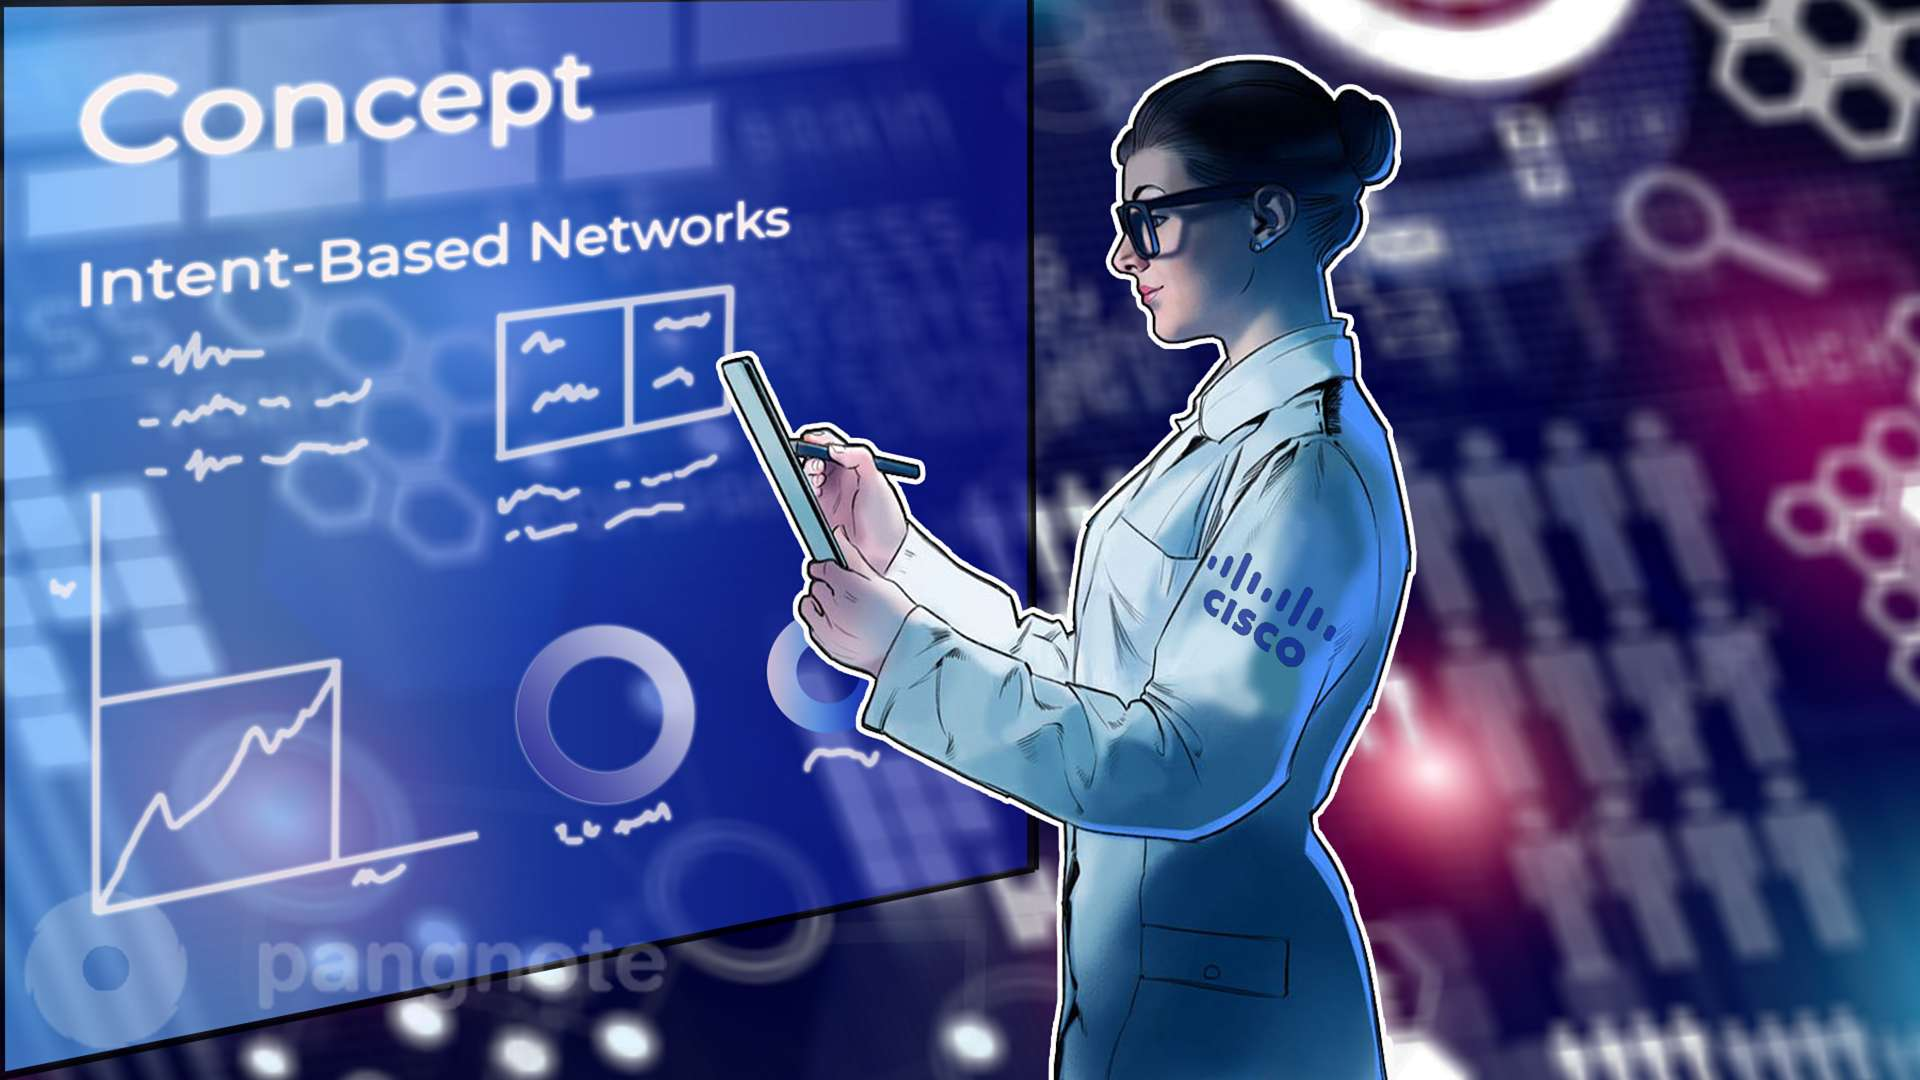 Cisco is working on the implementation of the Intent-Based Networks concept